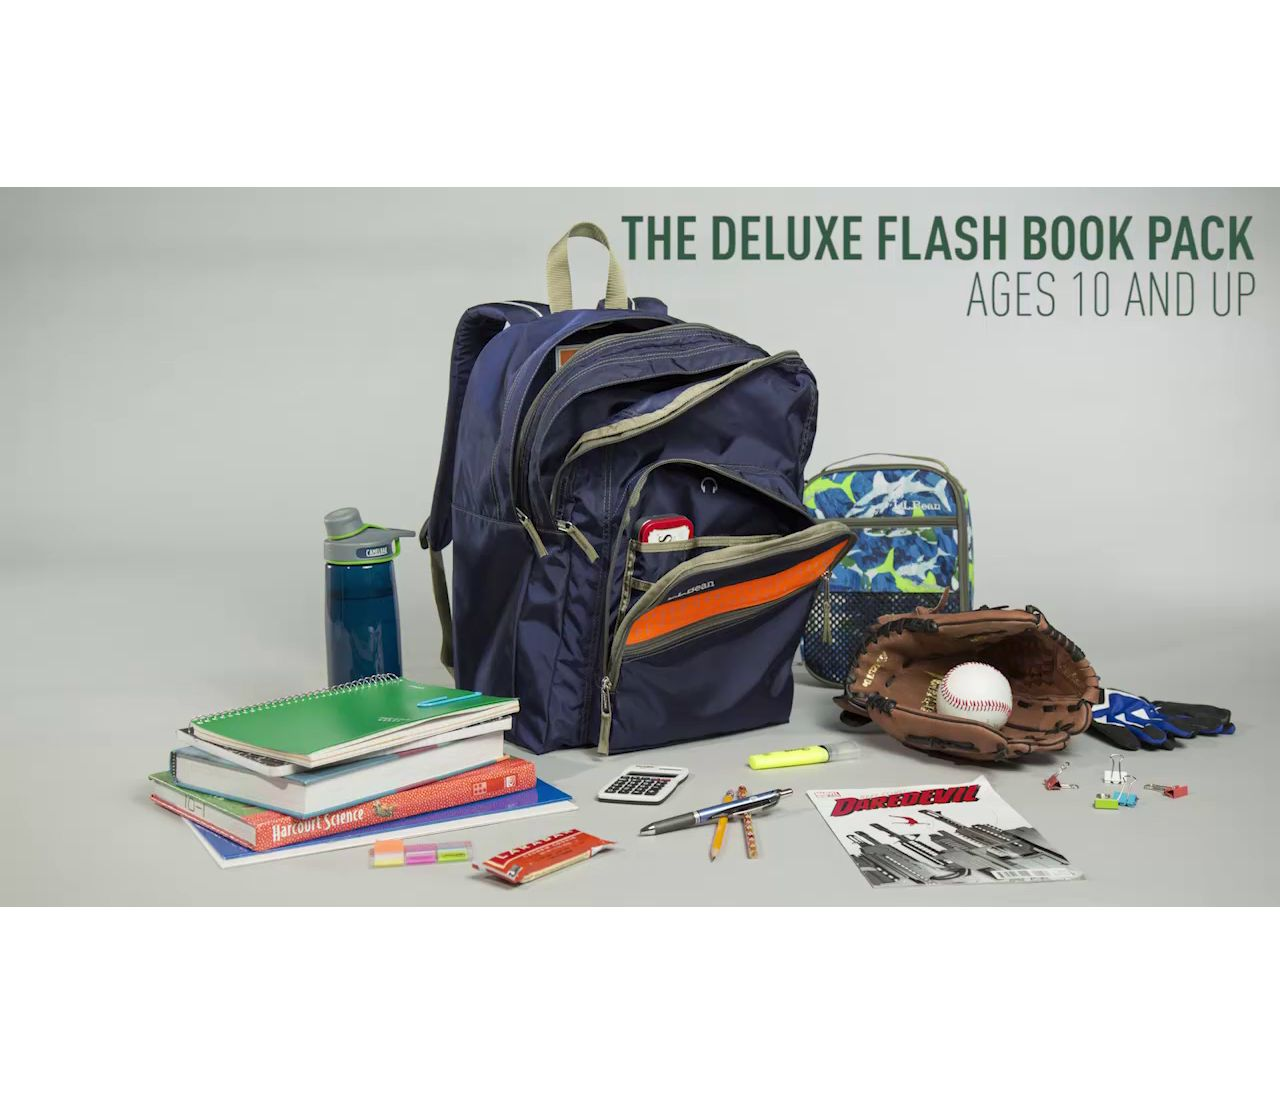 Video: Deluxe Flash Book Pack